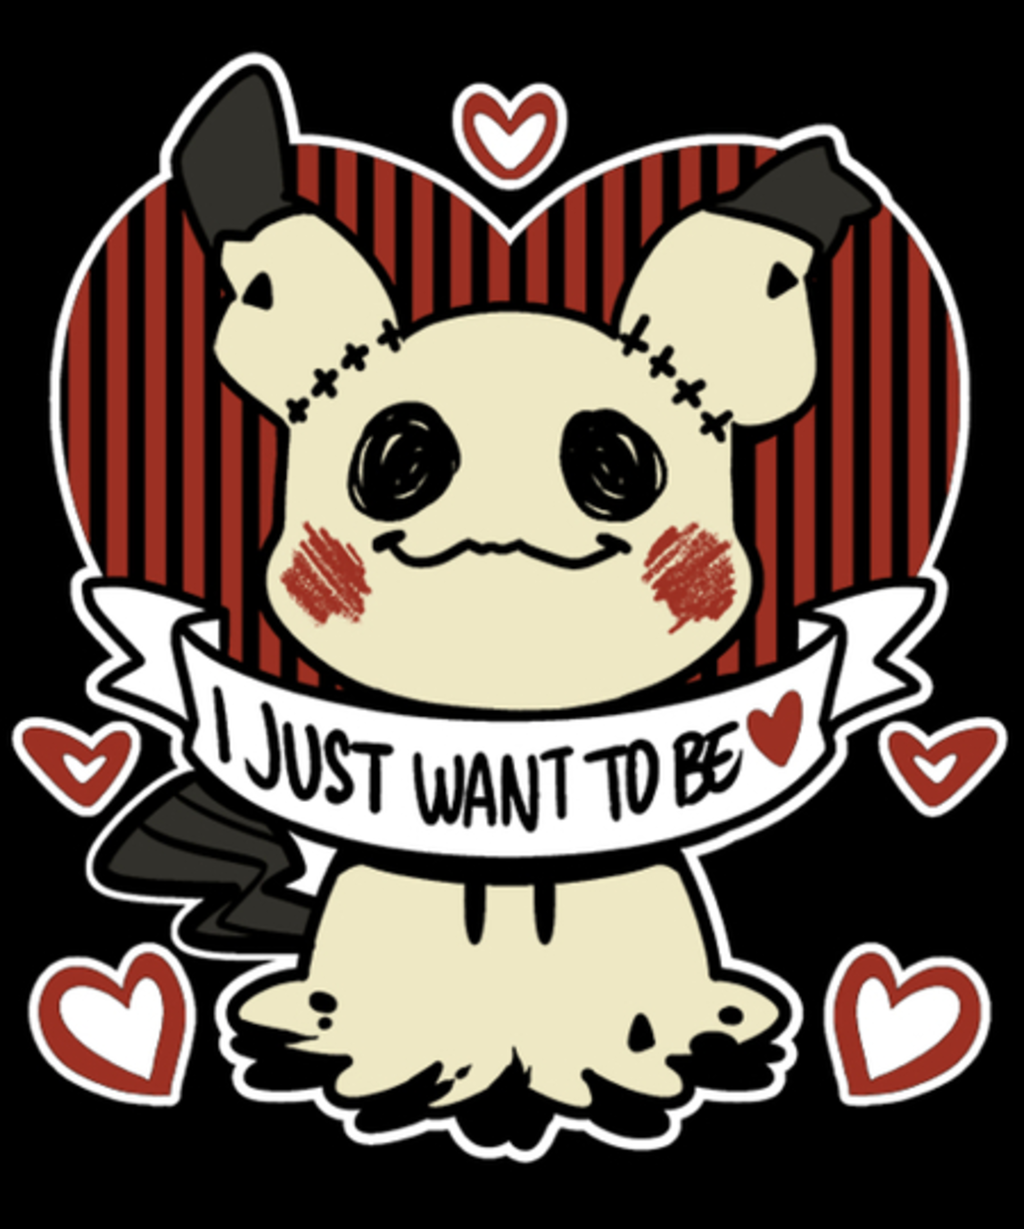 Qwertee: I Just Want to Be